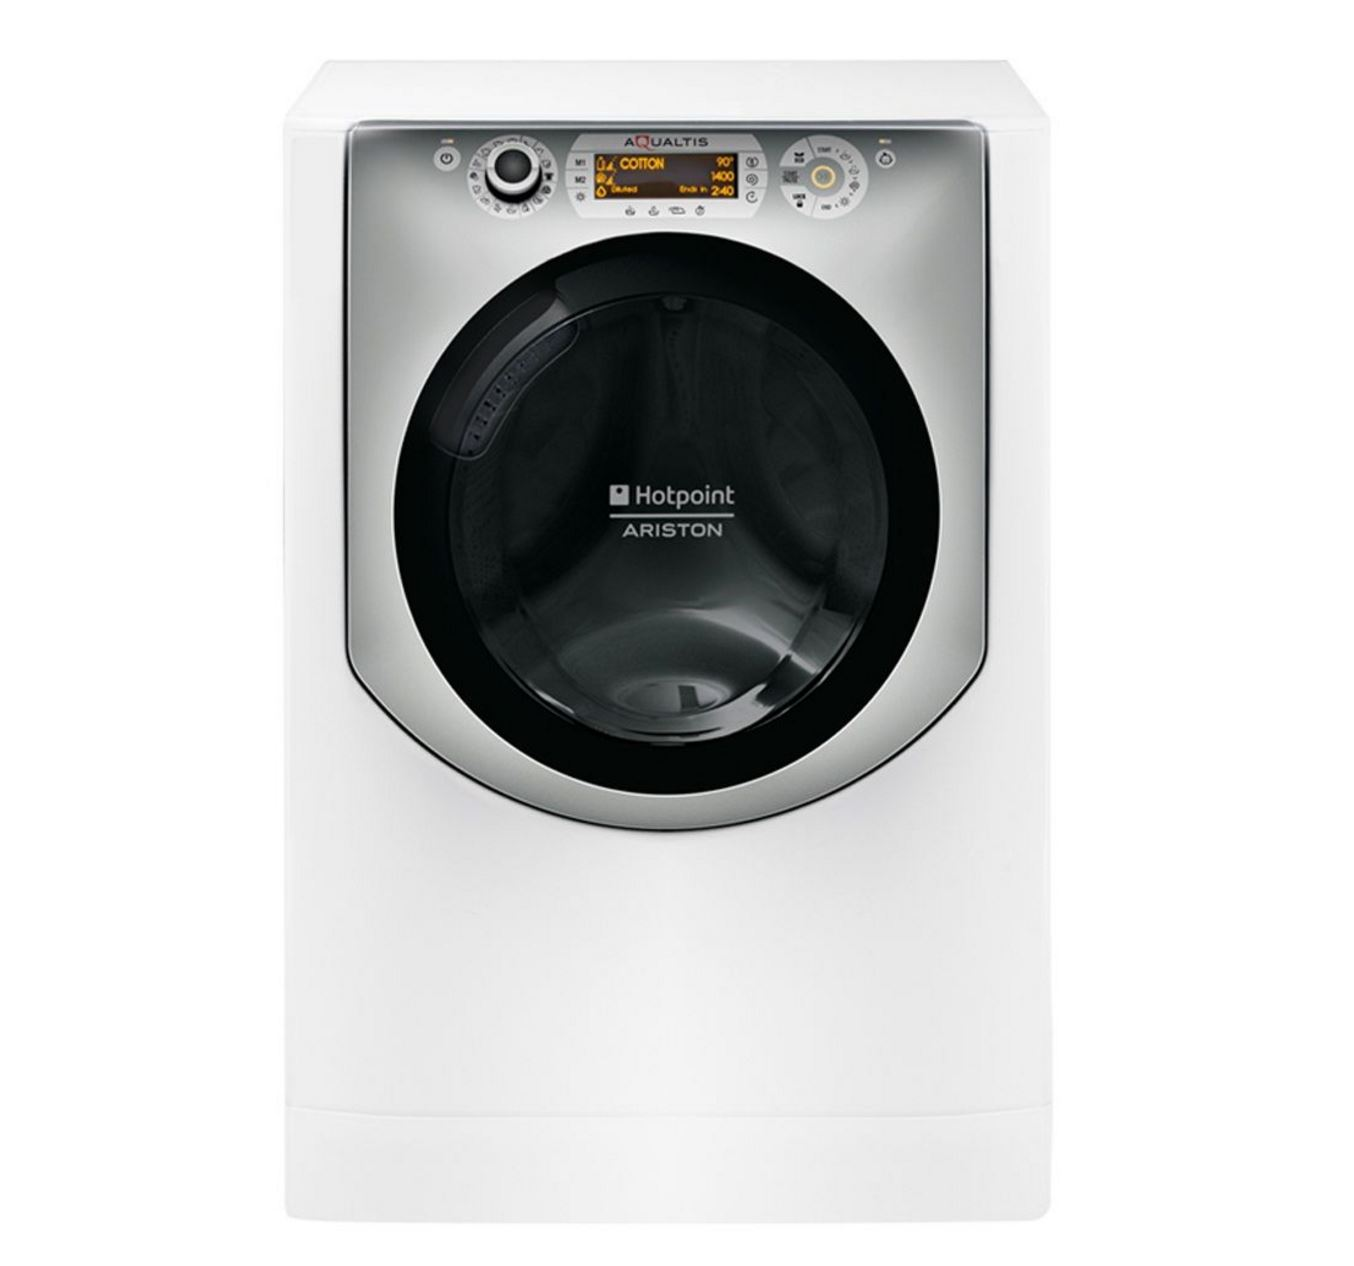 emag-electrocasnice-hotpoint-4